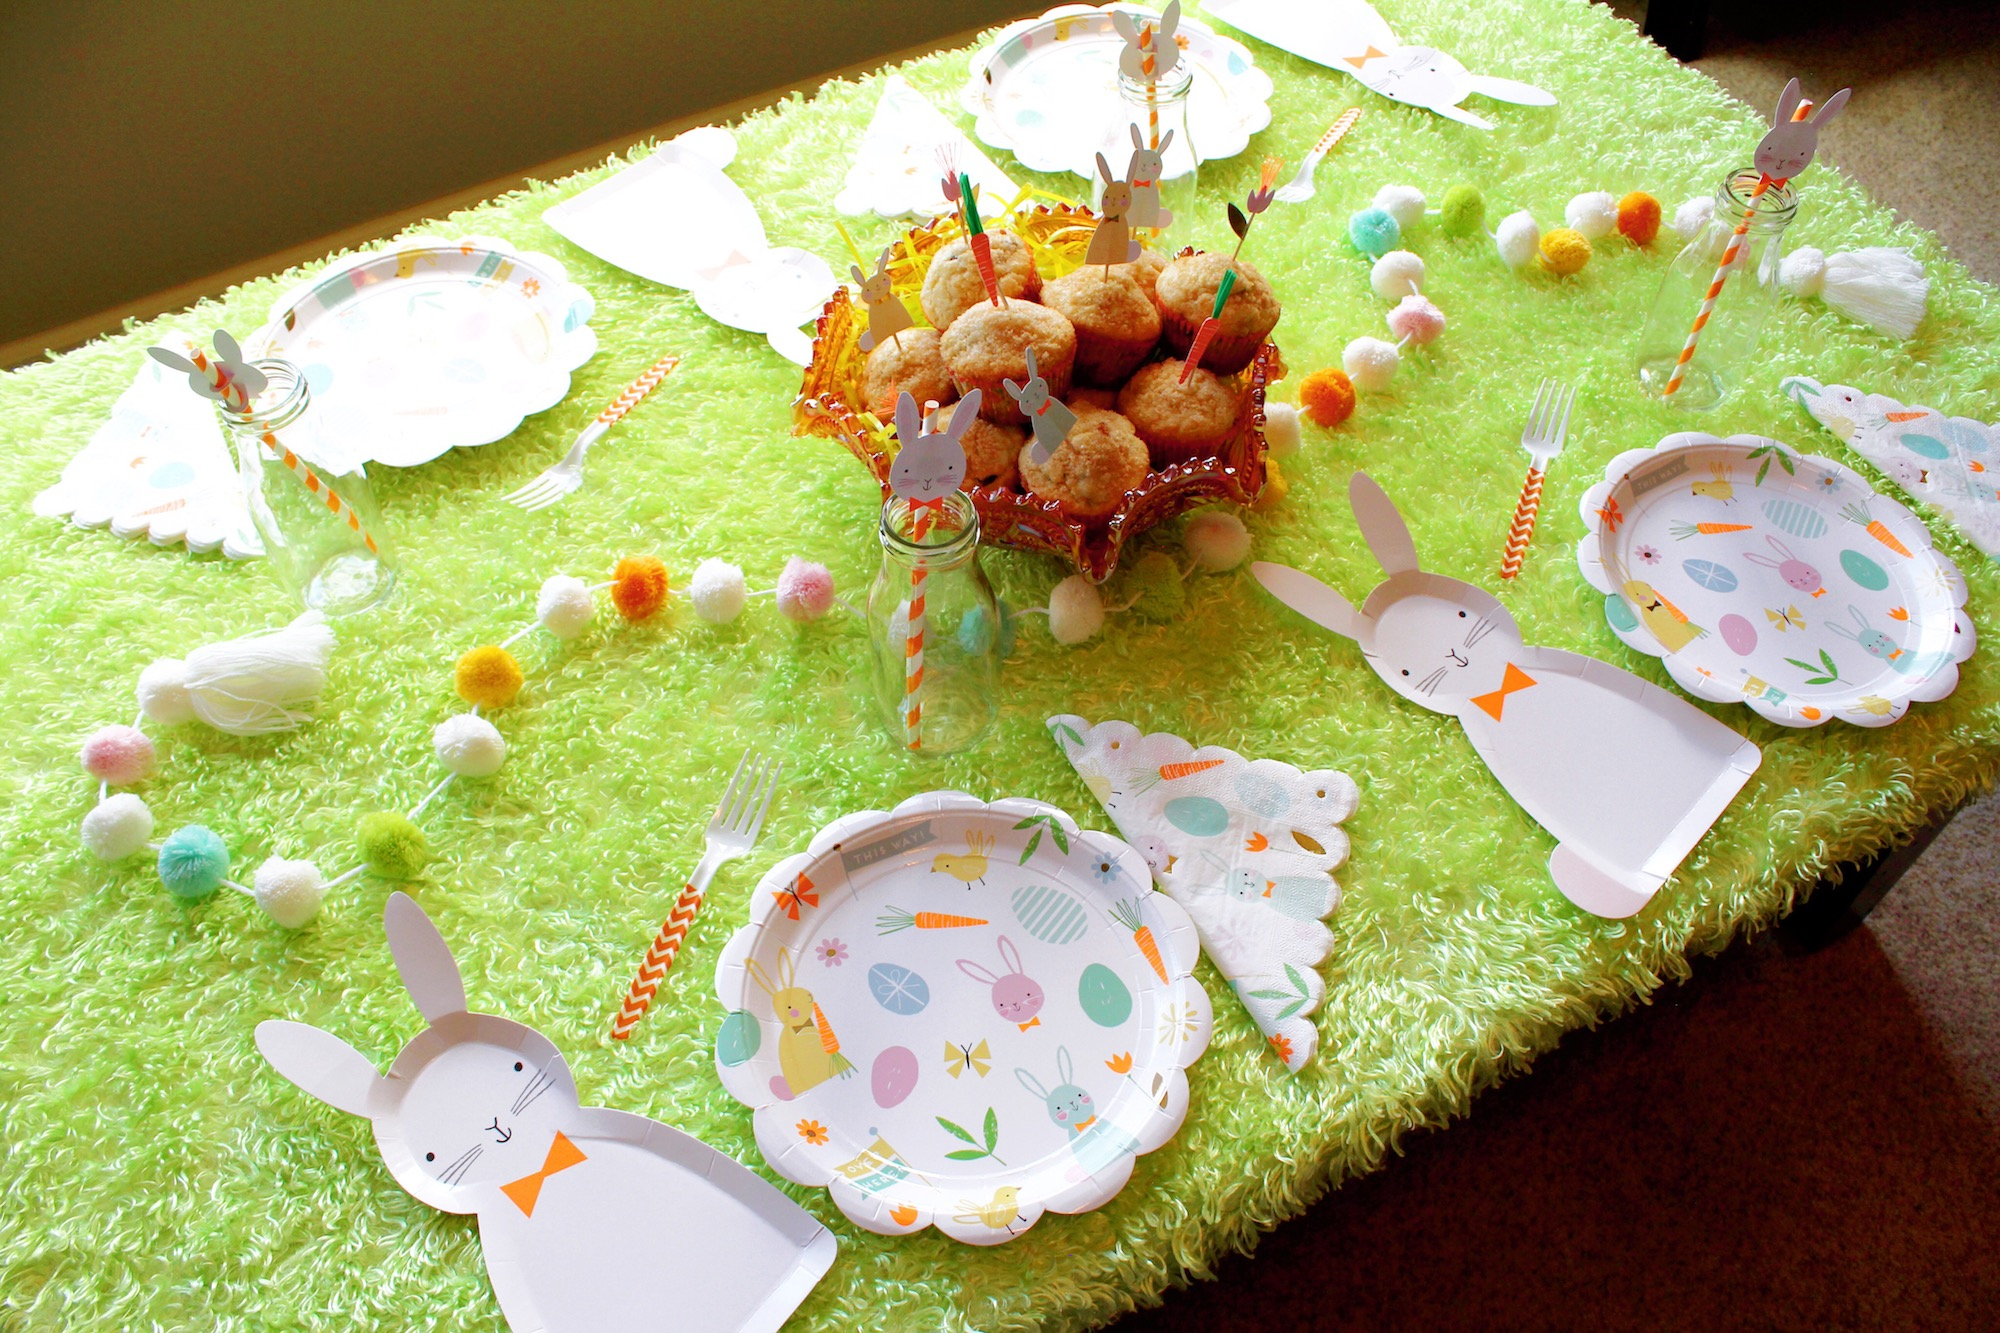 Easter Bunny Tablescape_Egg Hunt Breakfast Brunch_Design Organize Party.JPG